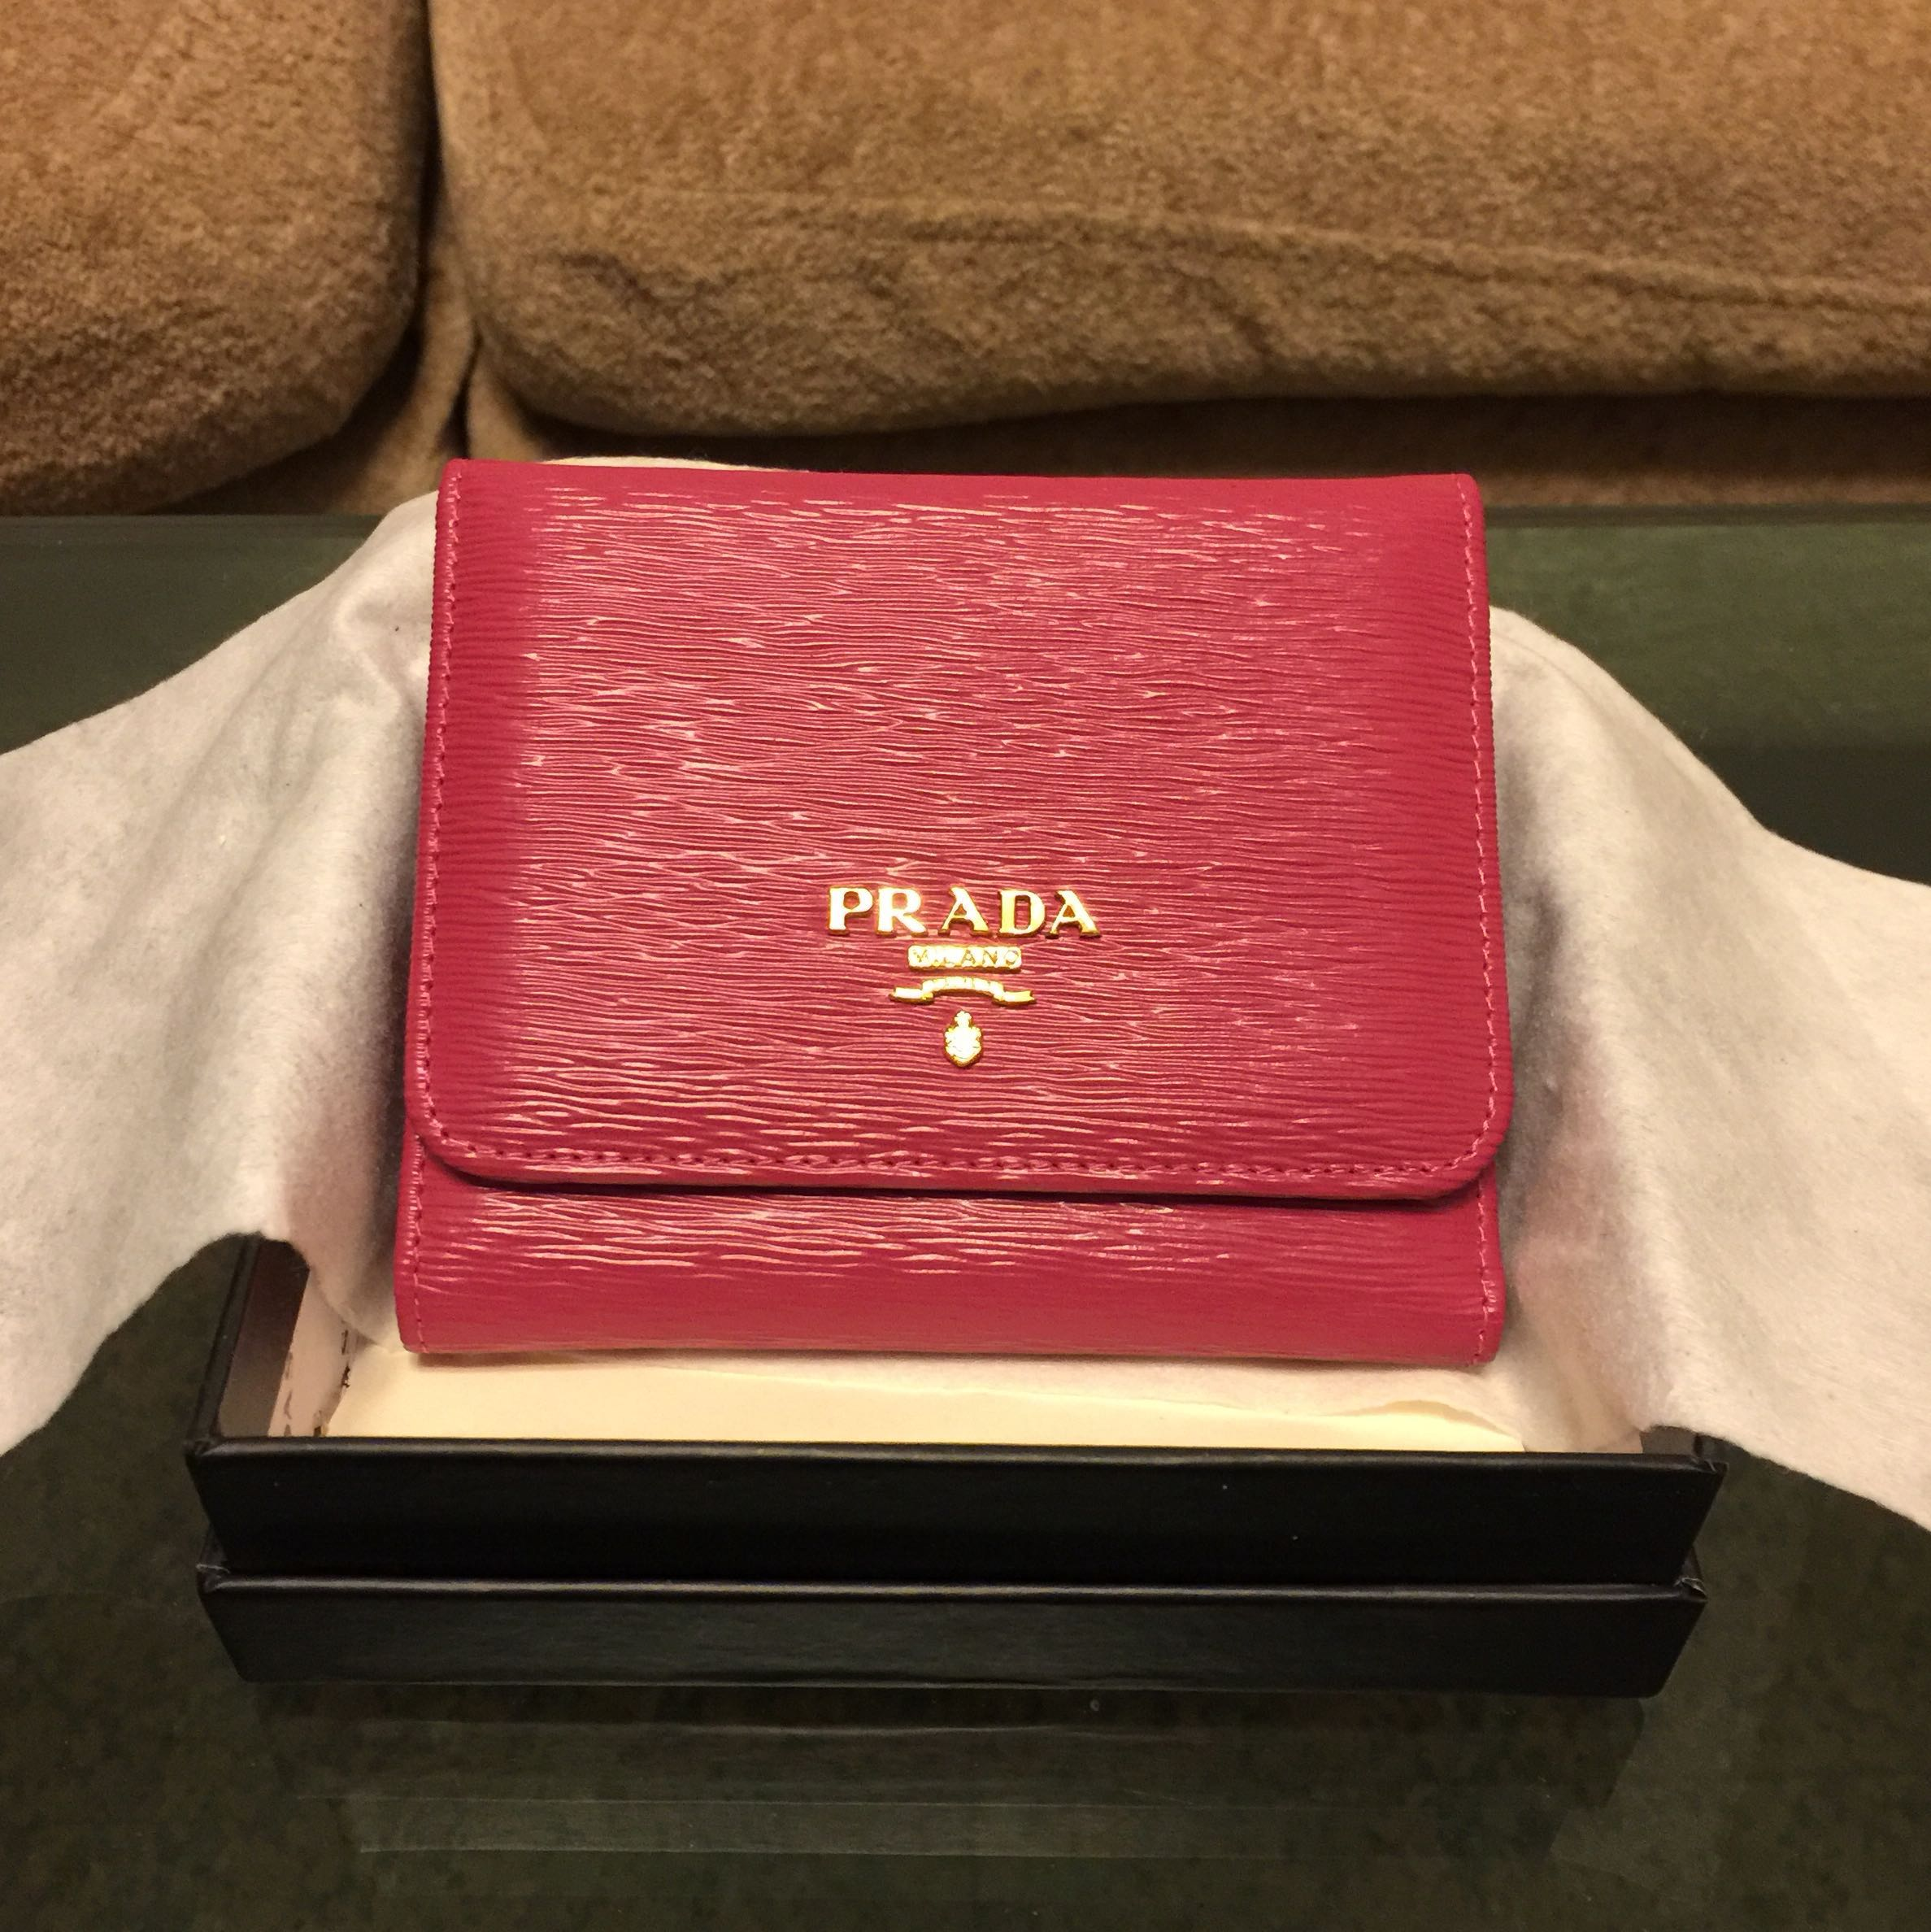 0975ffa2613c Prada trifold wallet [SALE], Luxury, Bags & Wallets, Wallets on ...